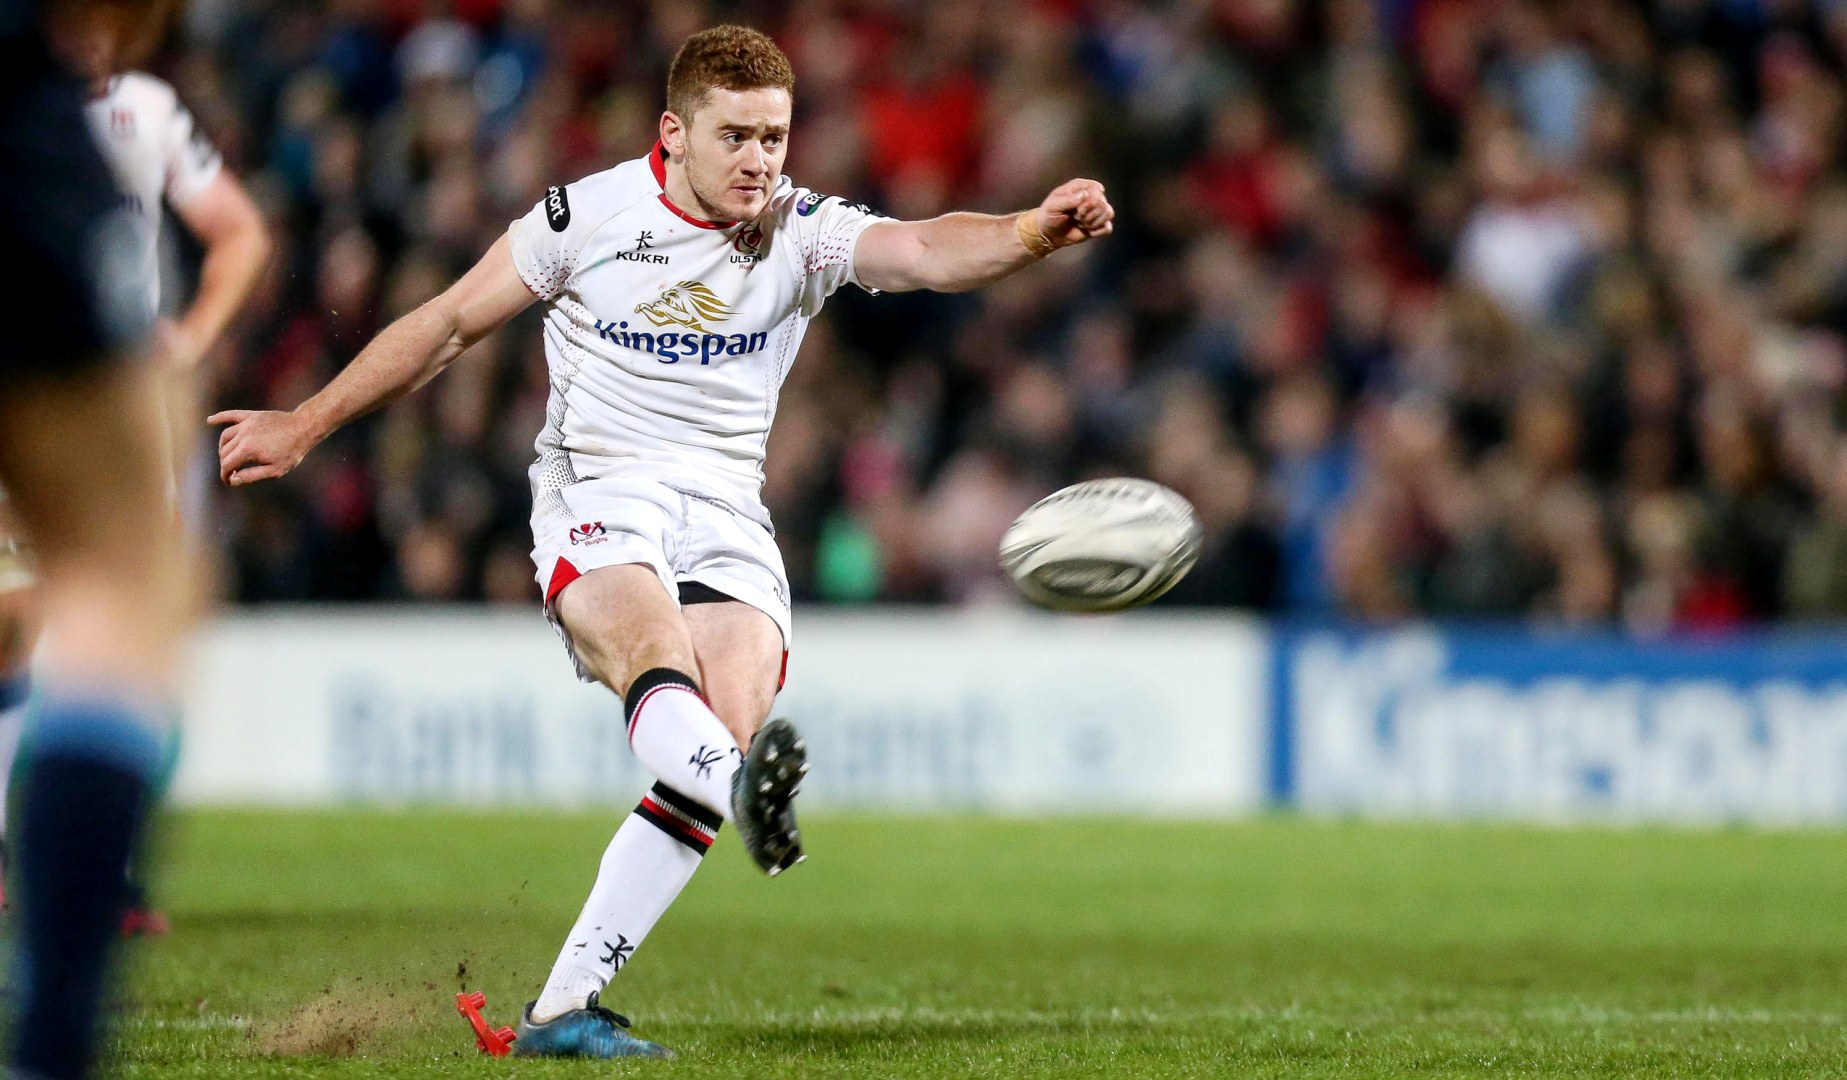 LionsWatch: Ulster's Paddy Jackson earns his side a share of the spoils